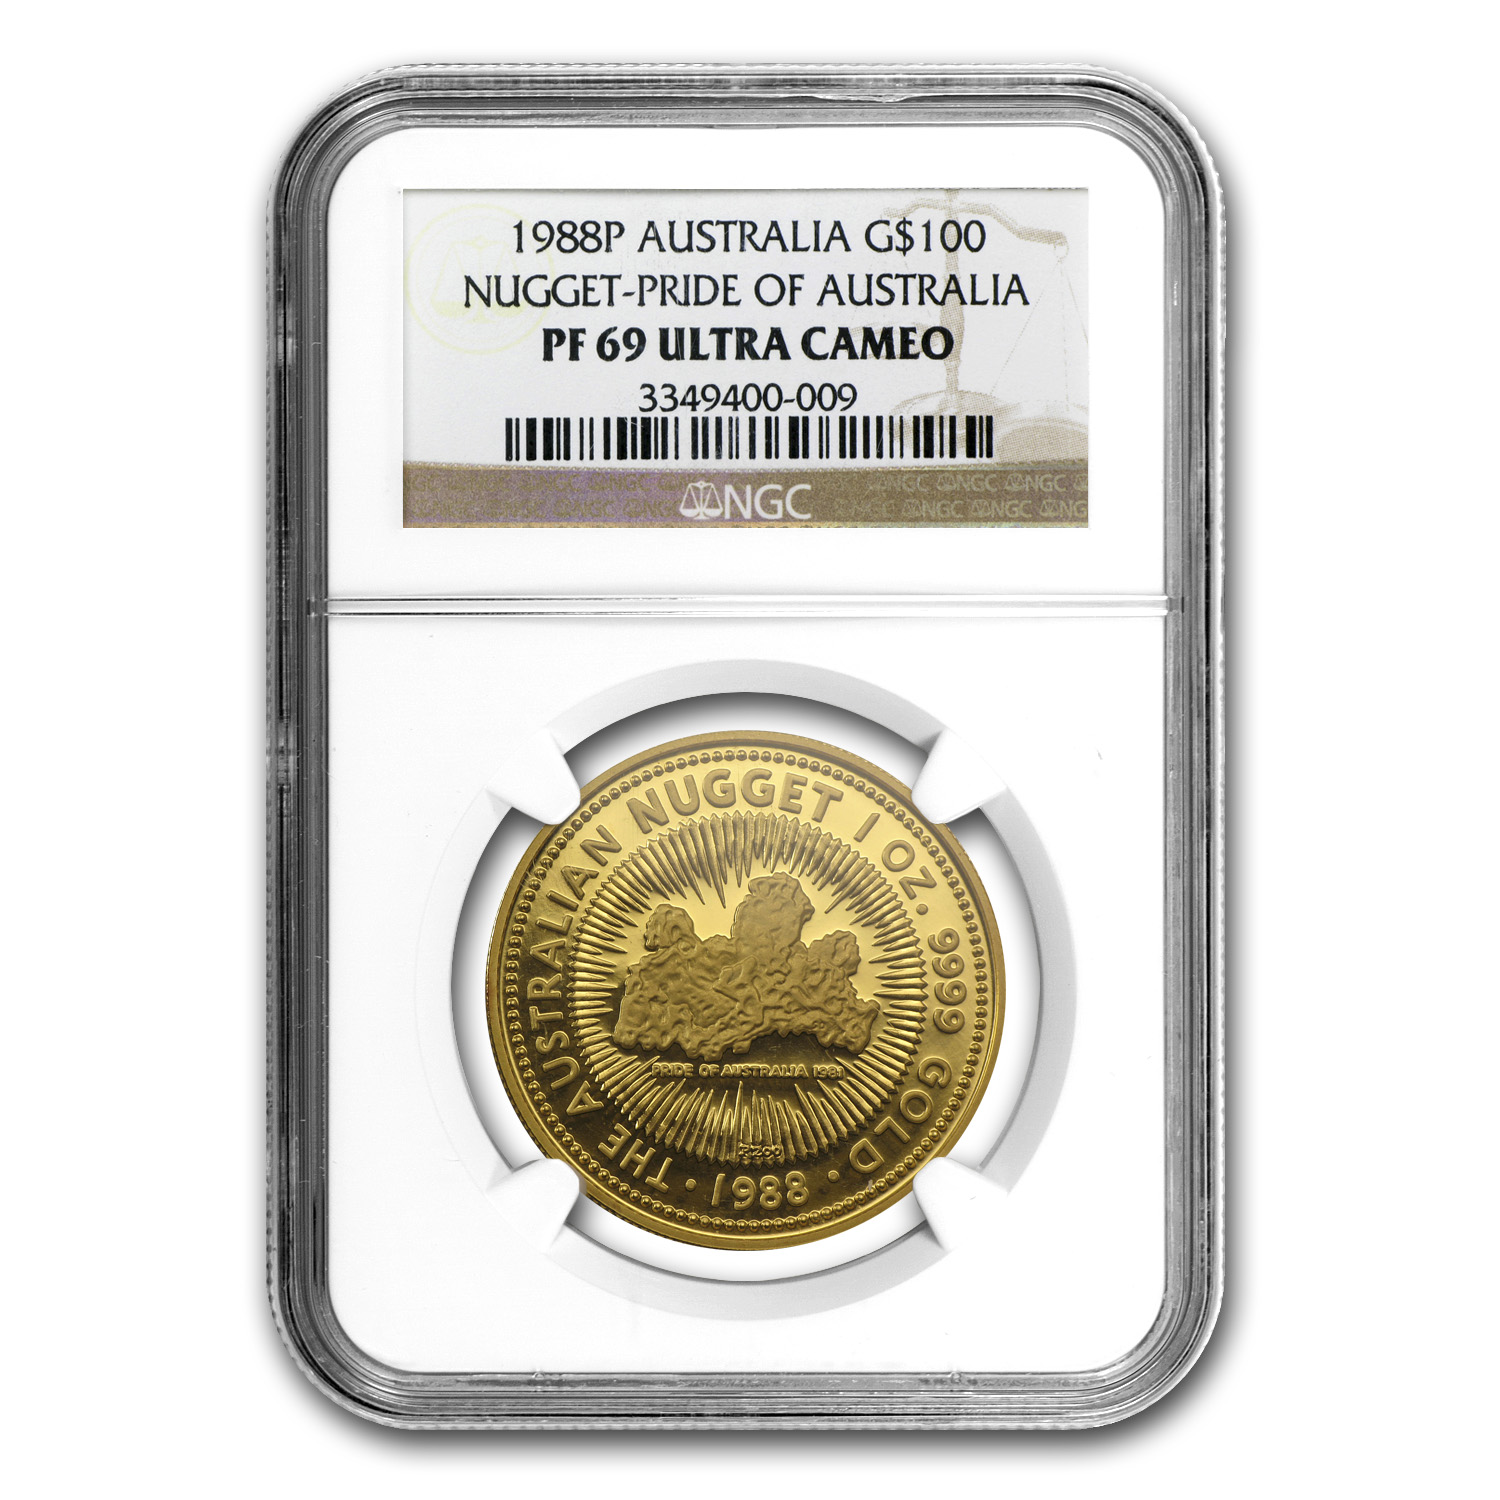 1988 1 oz Australian Proof Gold Nugget NGC PF-69